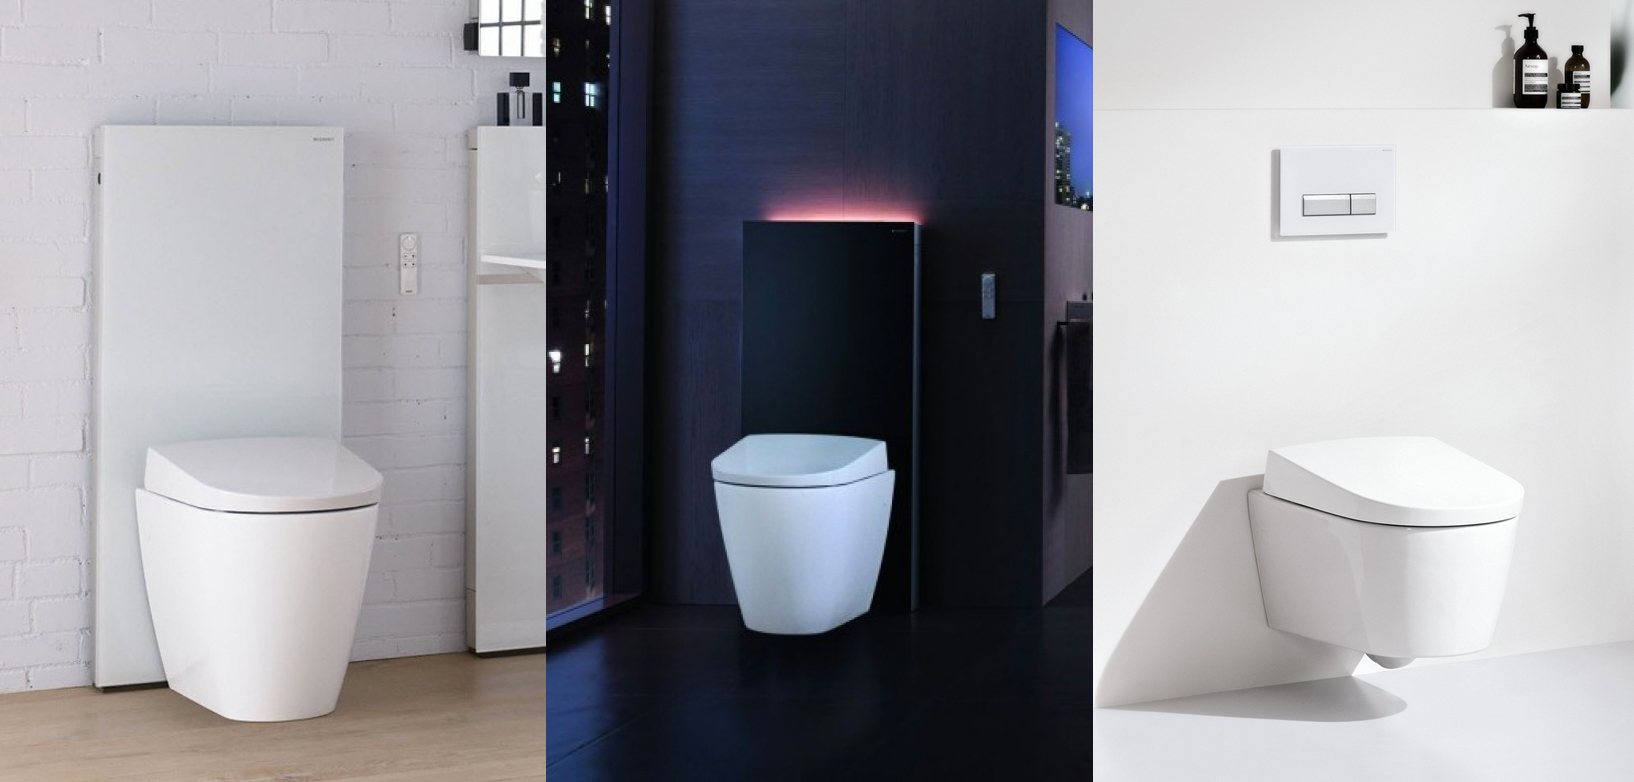 Geberit Aquaclean Sela with Geberit Monolith (Left, Middle), with Concealed Cistern (Right)